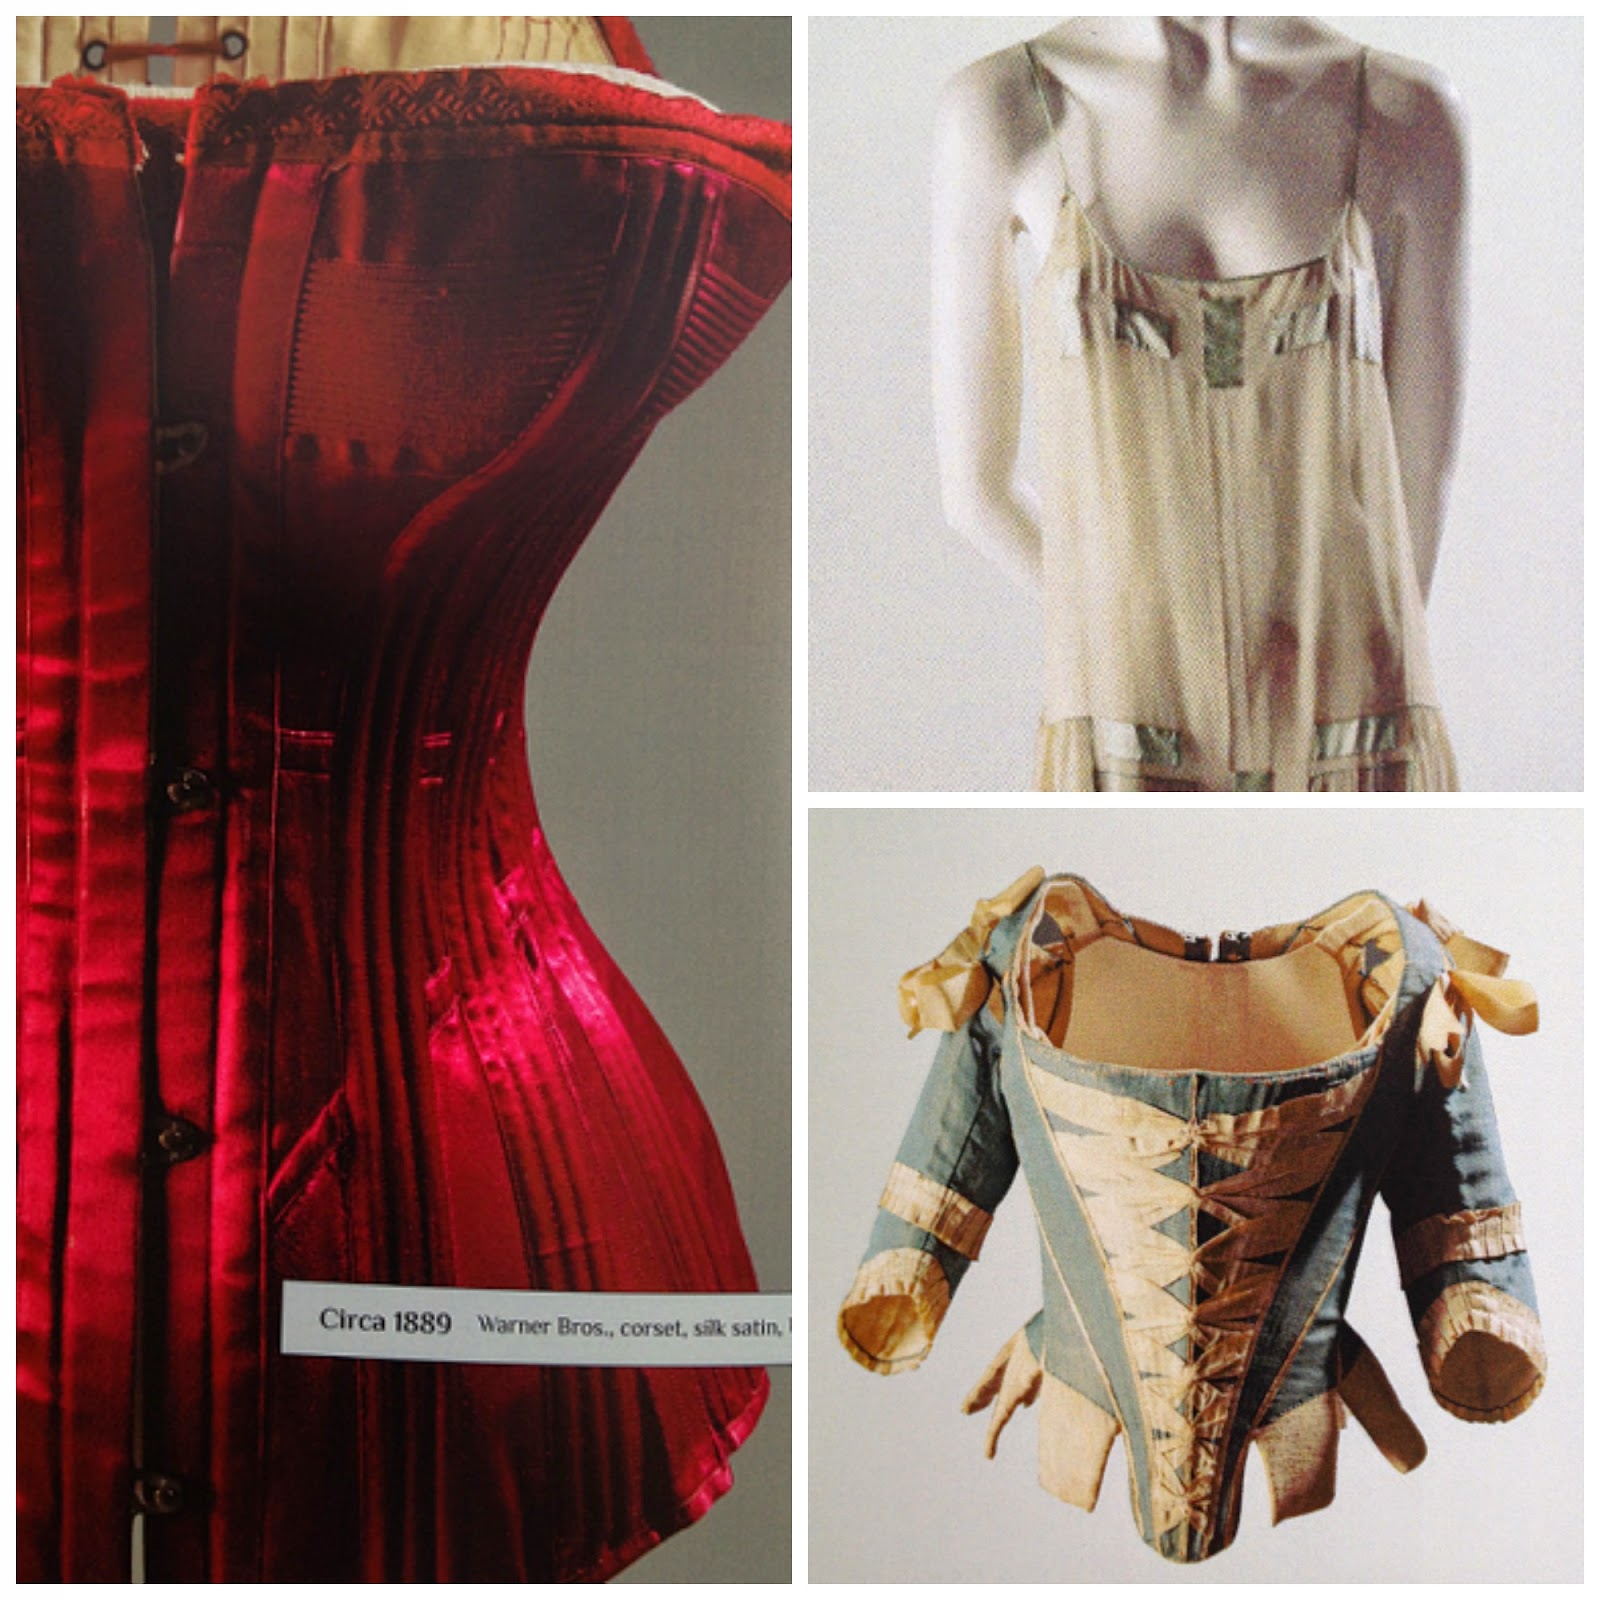 http://exhibitions.fitnyc.edu/exposed-lingerie-history/